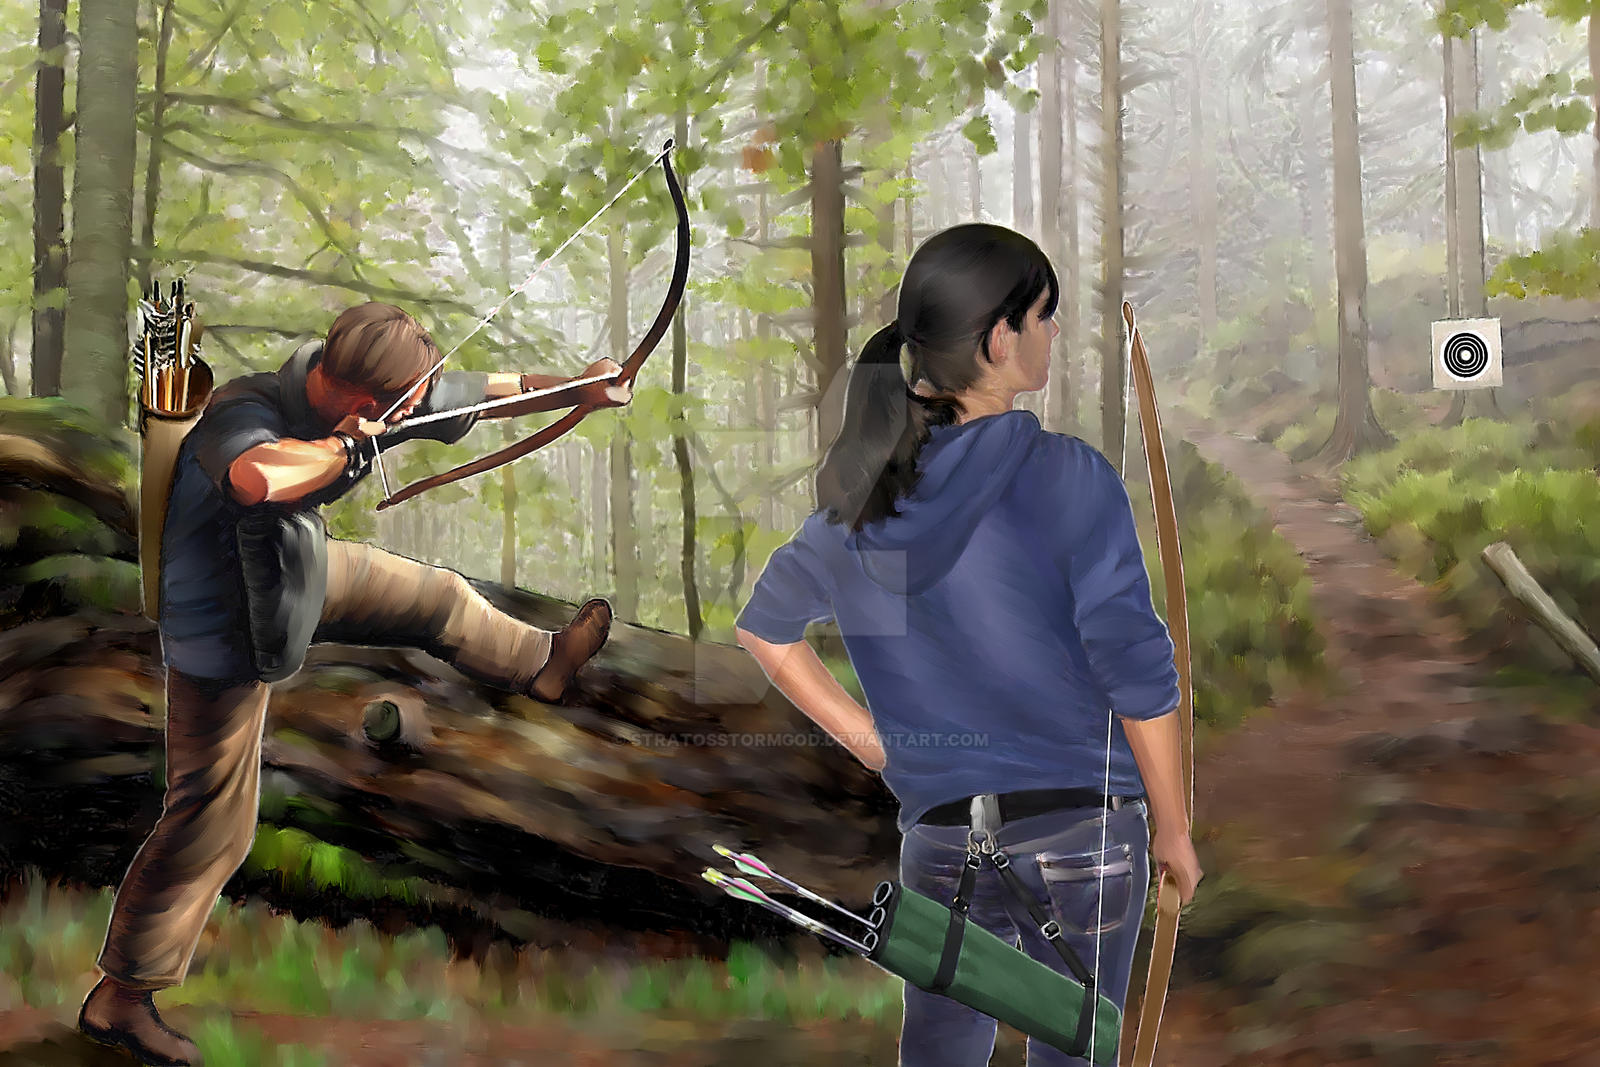 traditional archery wallpaper - photo #18